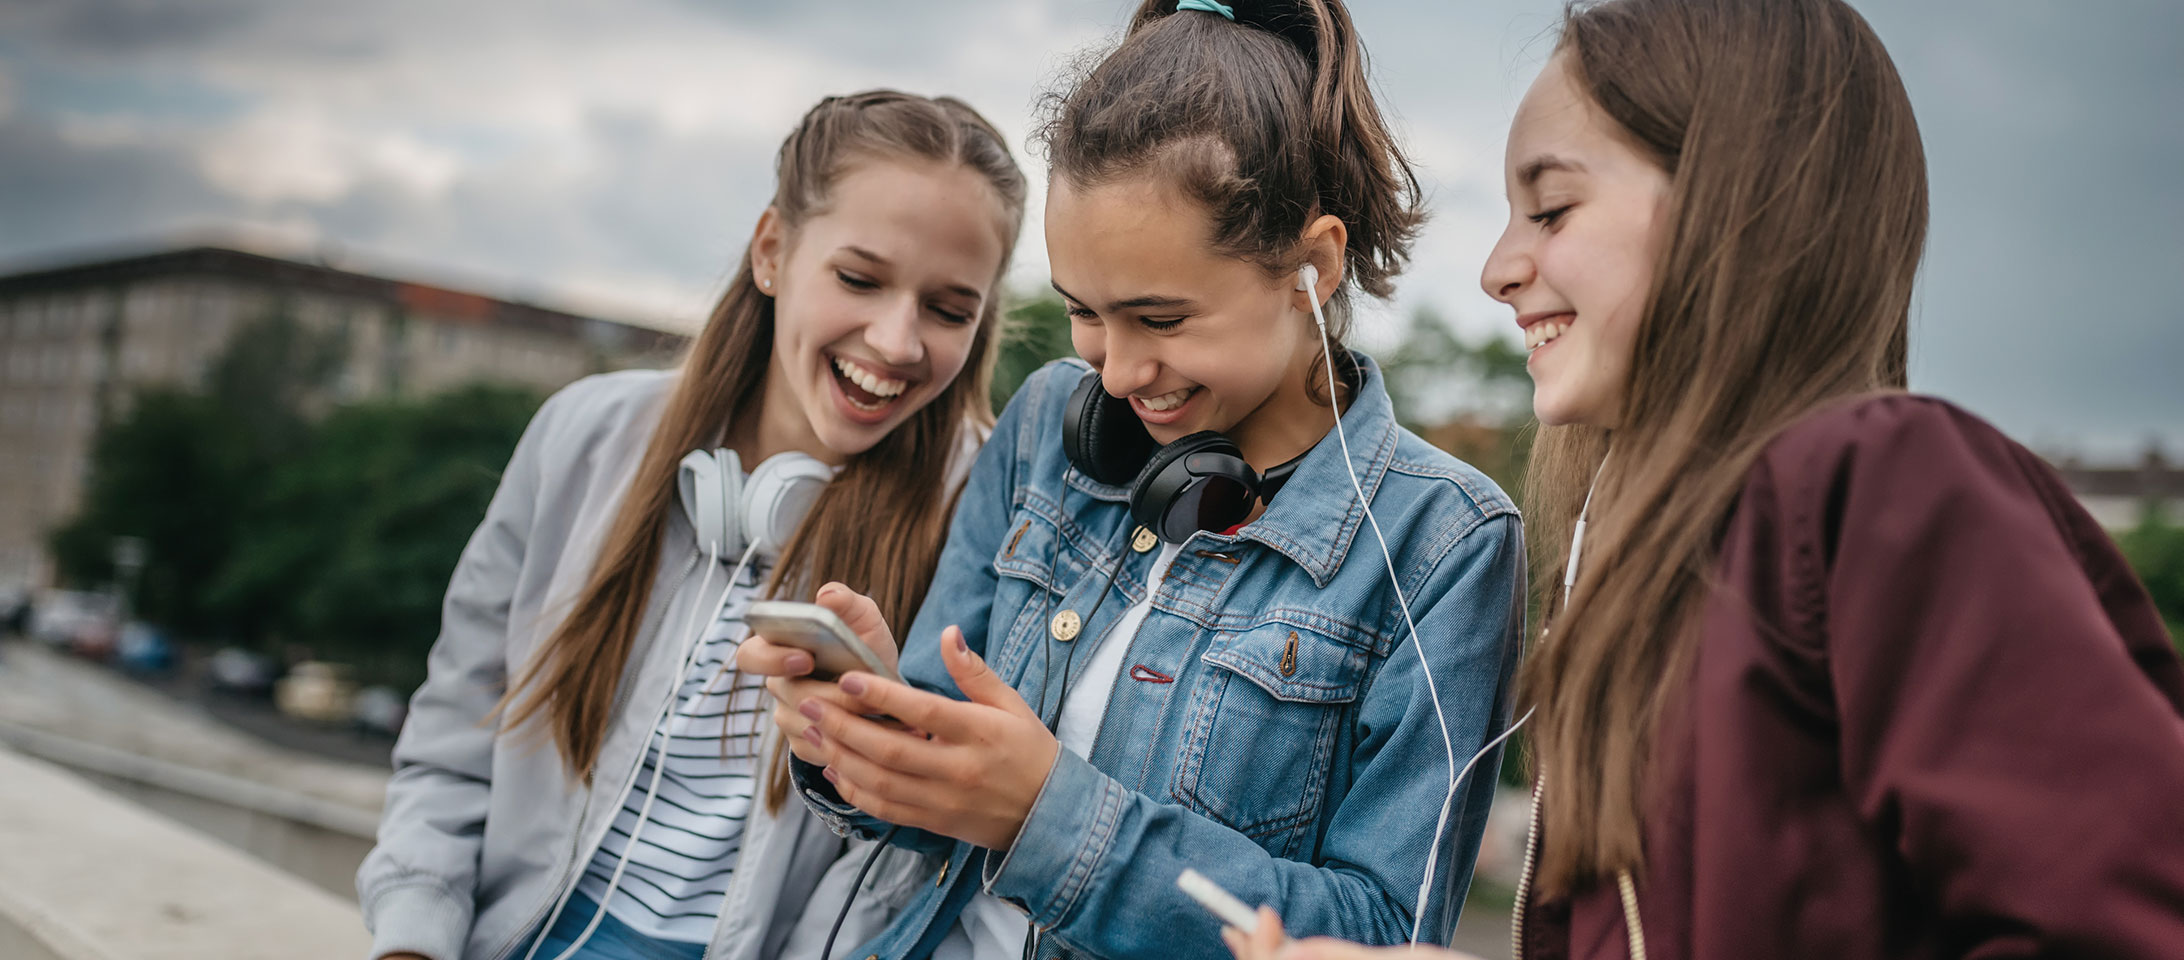 Teen girls looking at smartphones and laughing